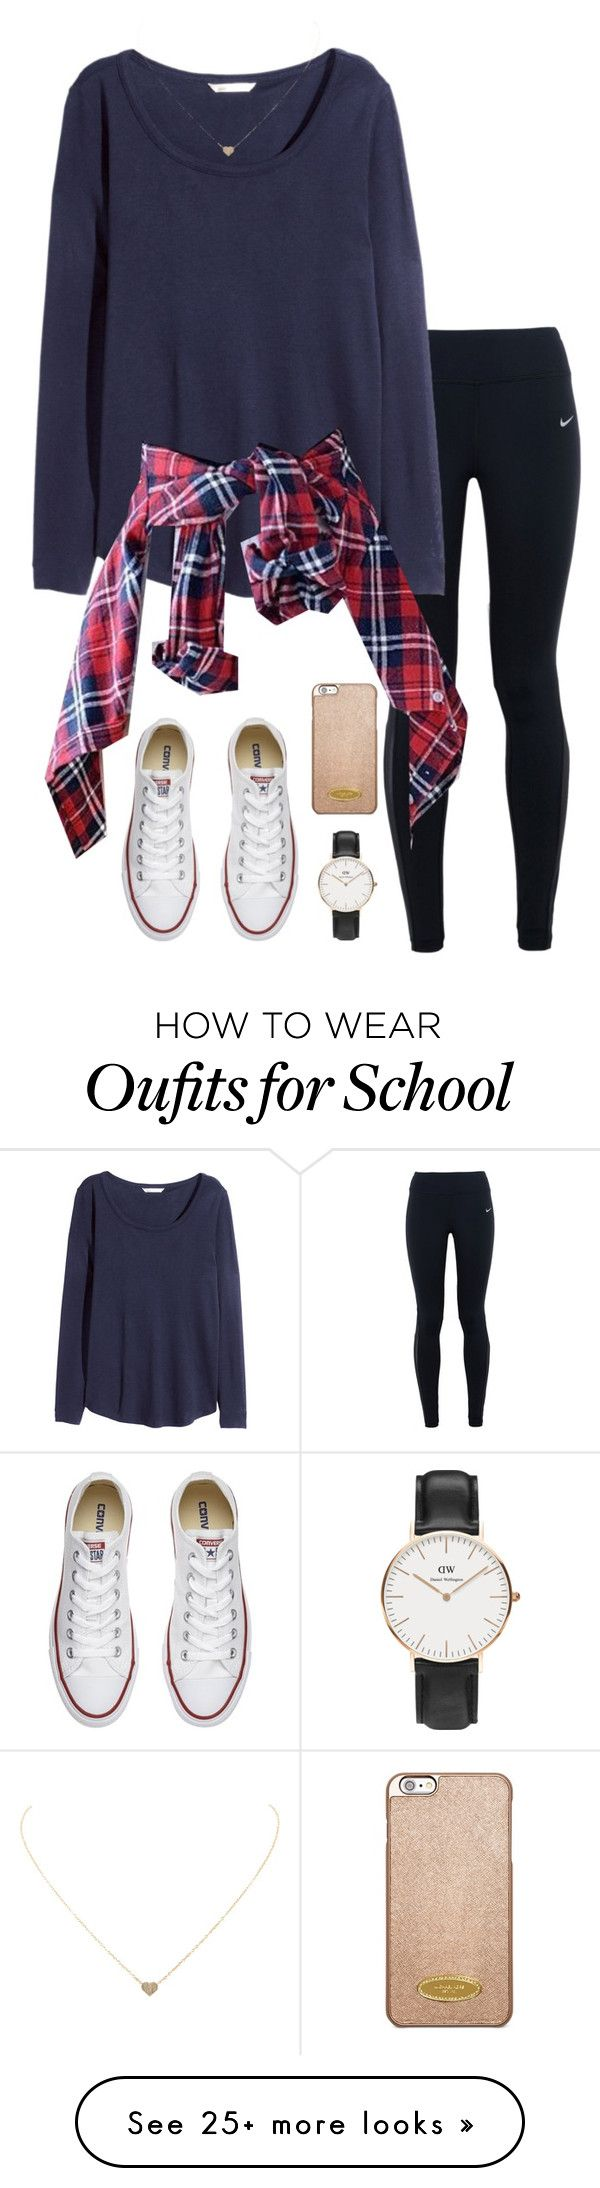 """School today"" by ksarak on Polyvore featuring NIKE, H&M, Humble Chic, Daniel Wellington, Michael Kors and Converse"